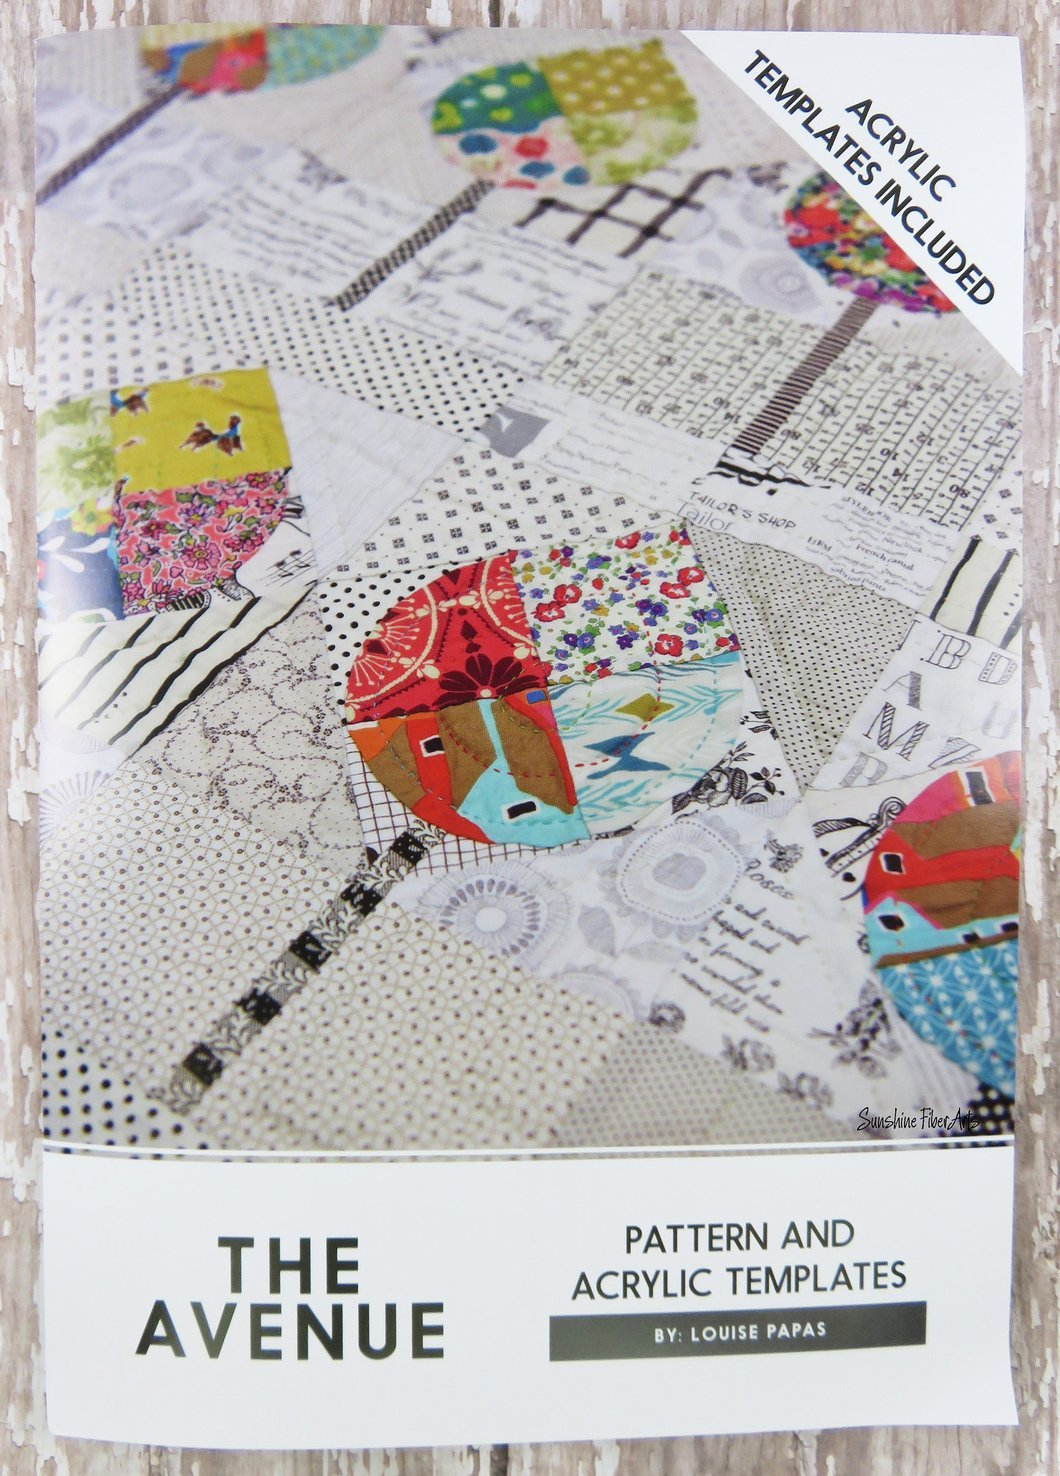 The Avenue Templates & Pattern